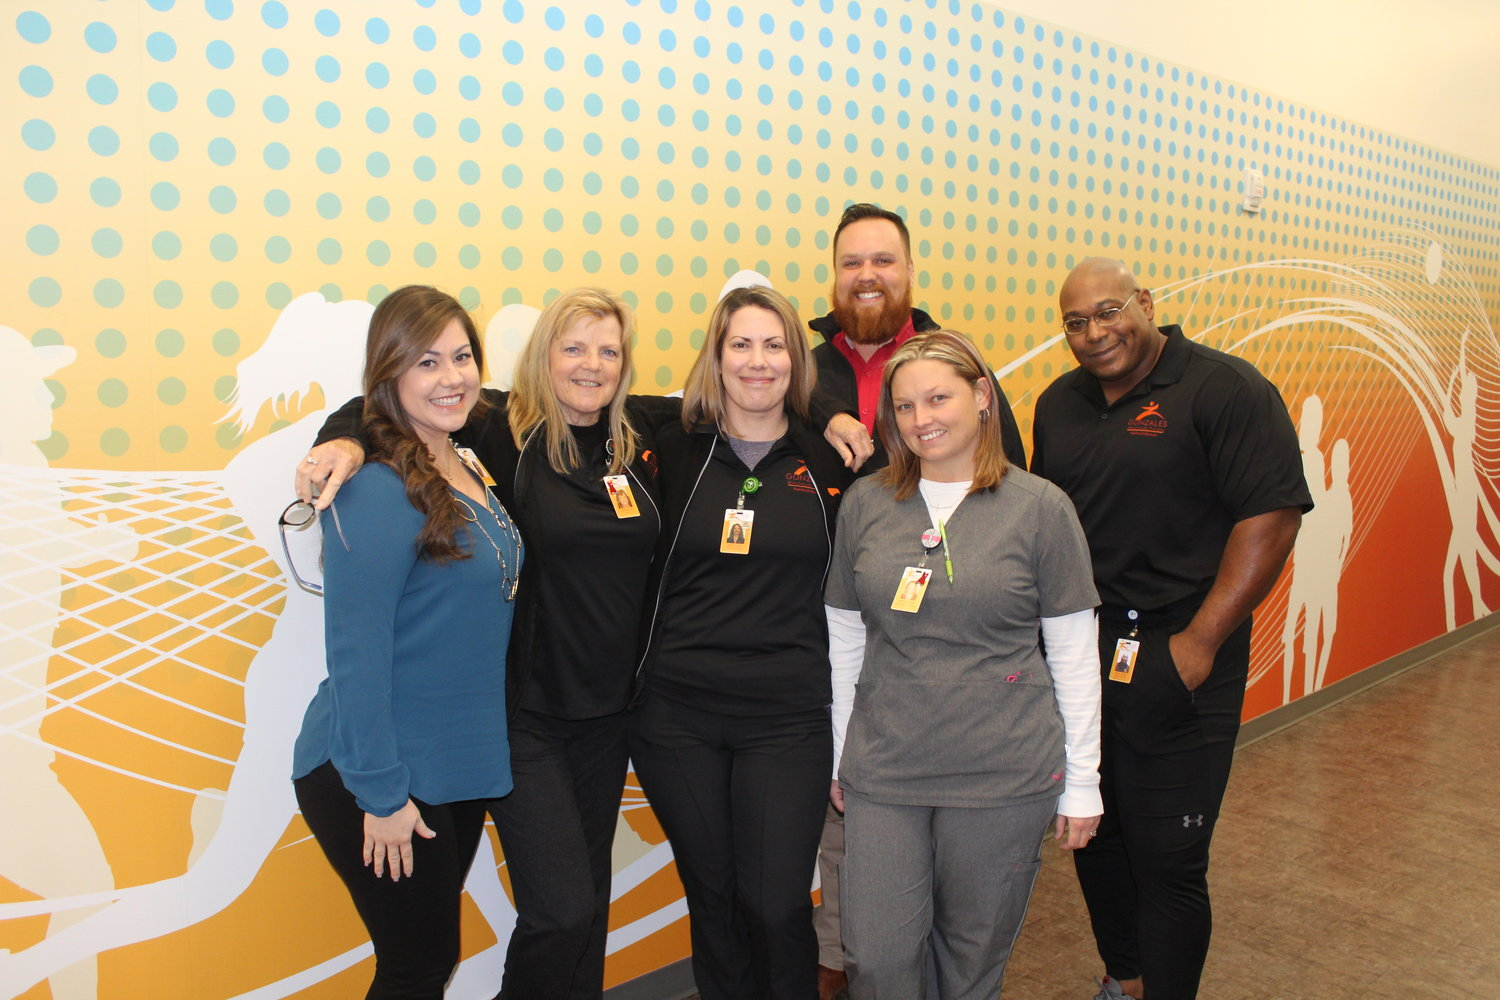 Thrive management and staff are operating one of Gonzales' most-important community assets. Pictured are: Melissa Collazo, Robin Tinsley, Belle Ducote, Jennifer Scott, Dewey Smith and Cedric Nichols.